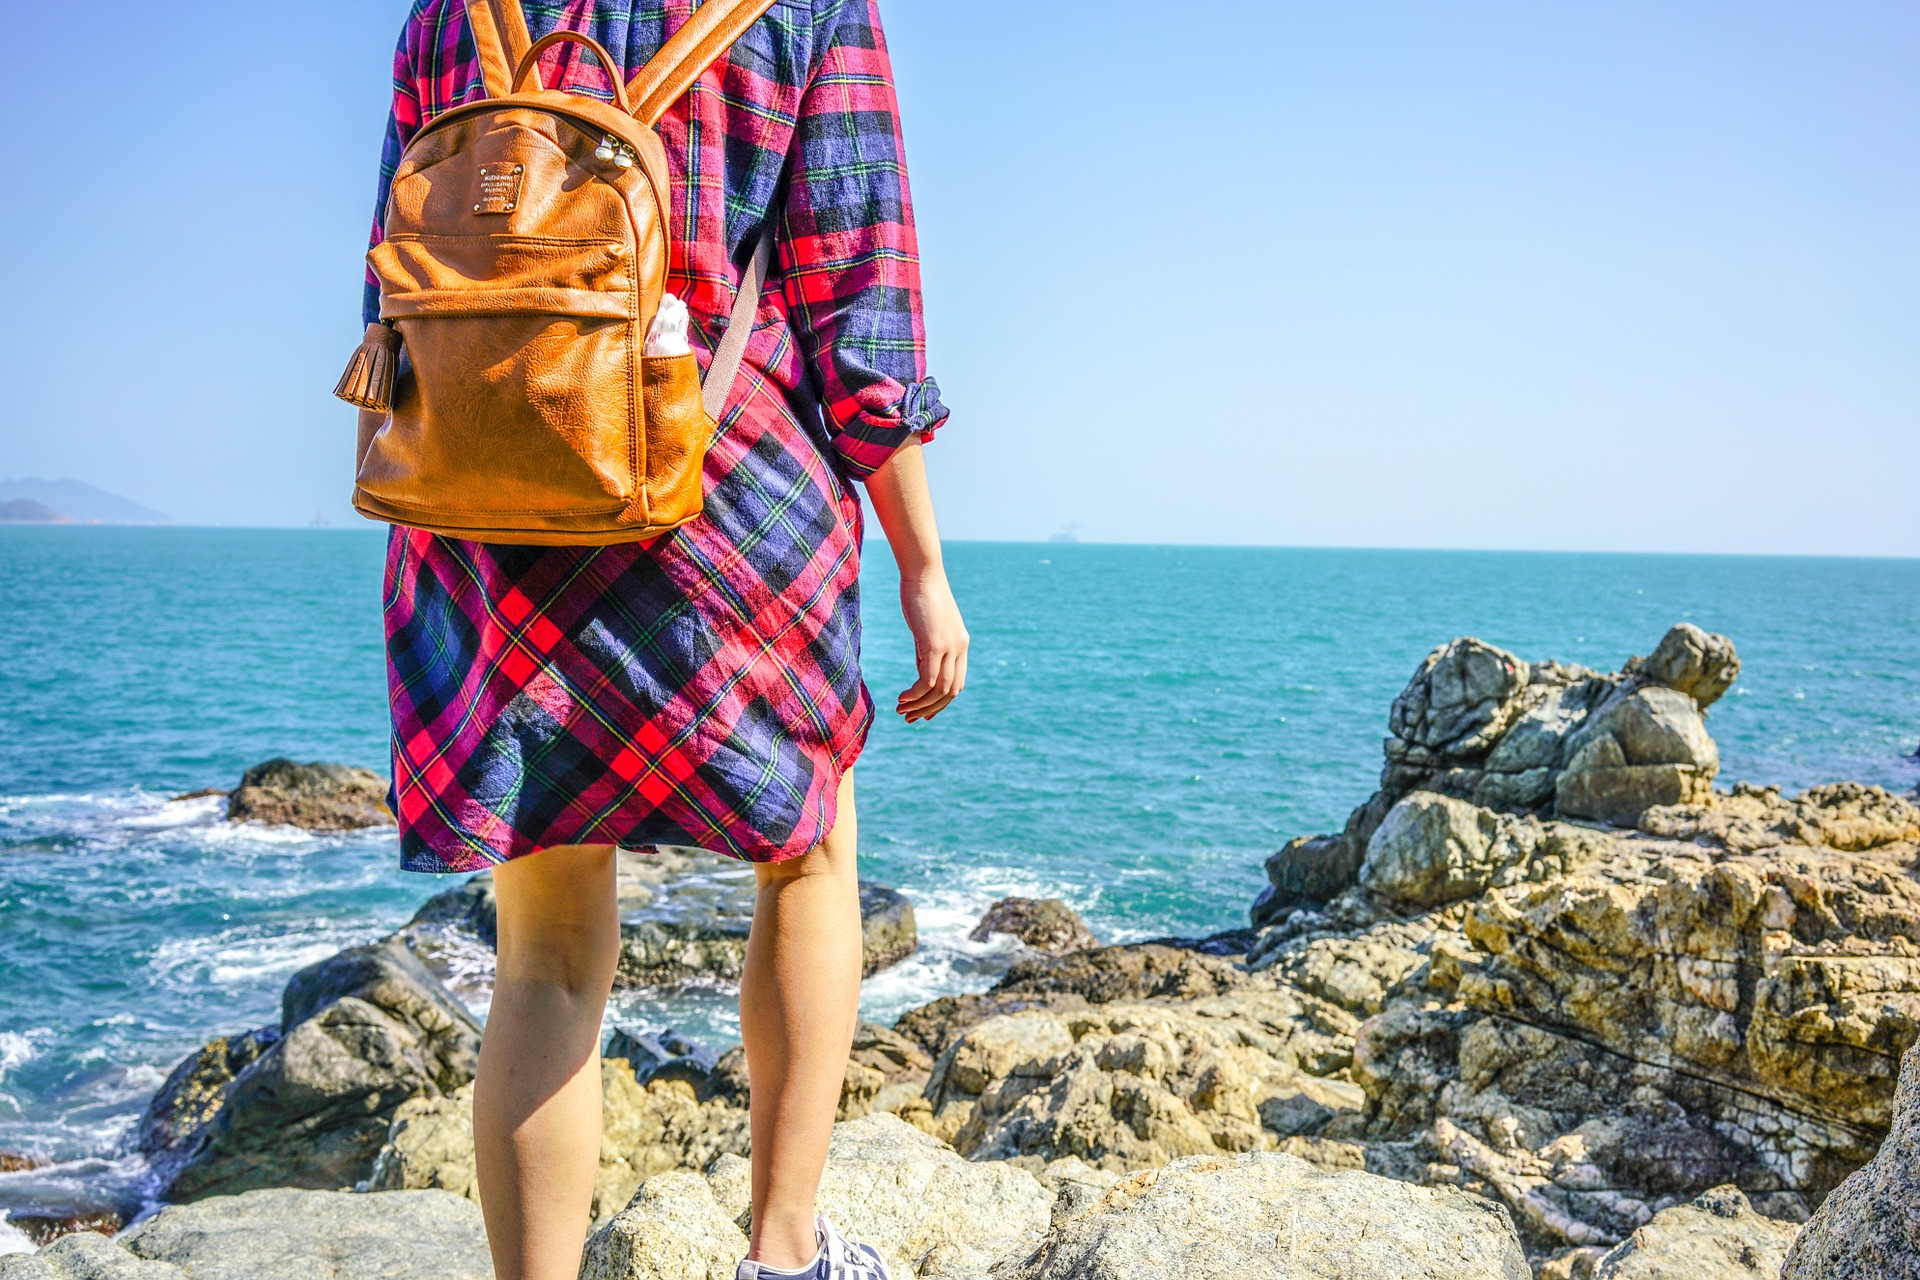 a girl on a backpack at the beach - Travel Guide: Backpack Vs Suitcase